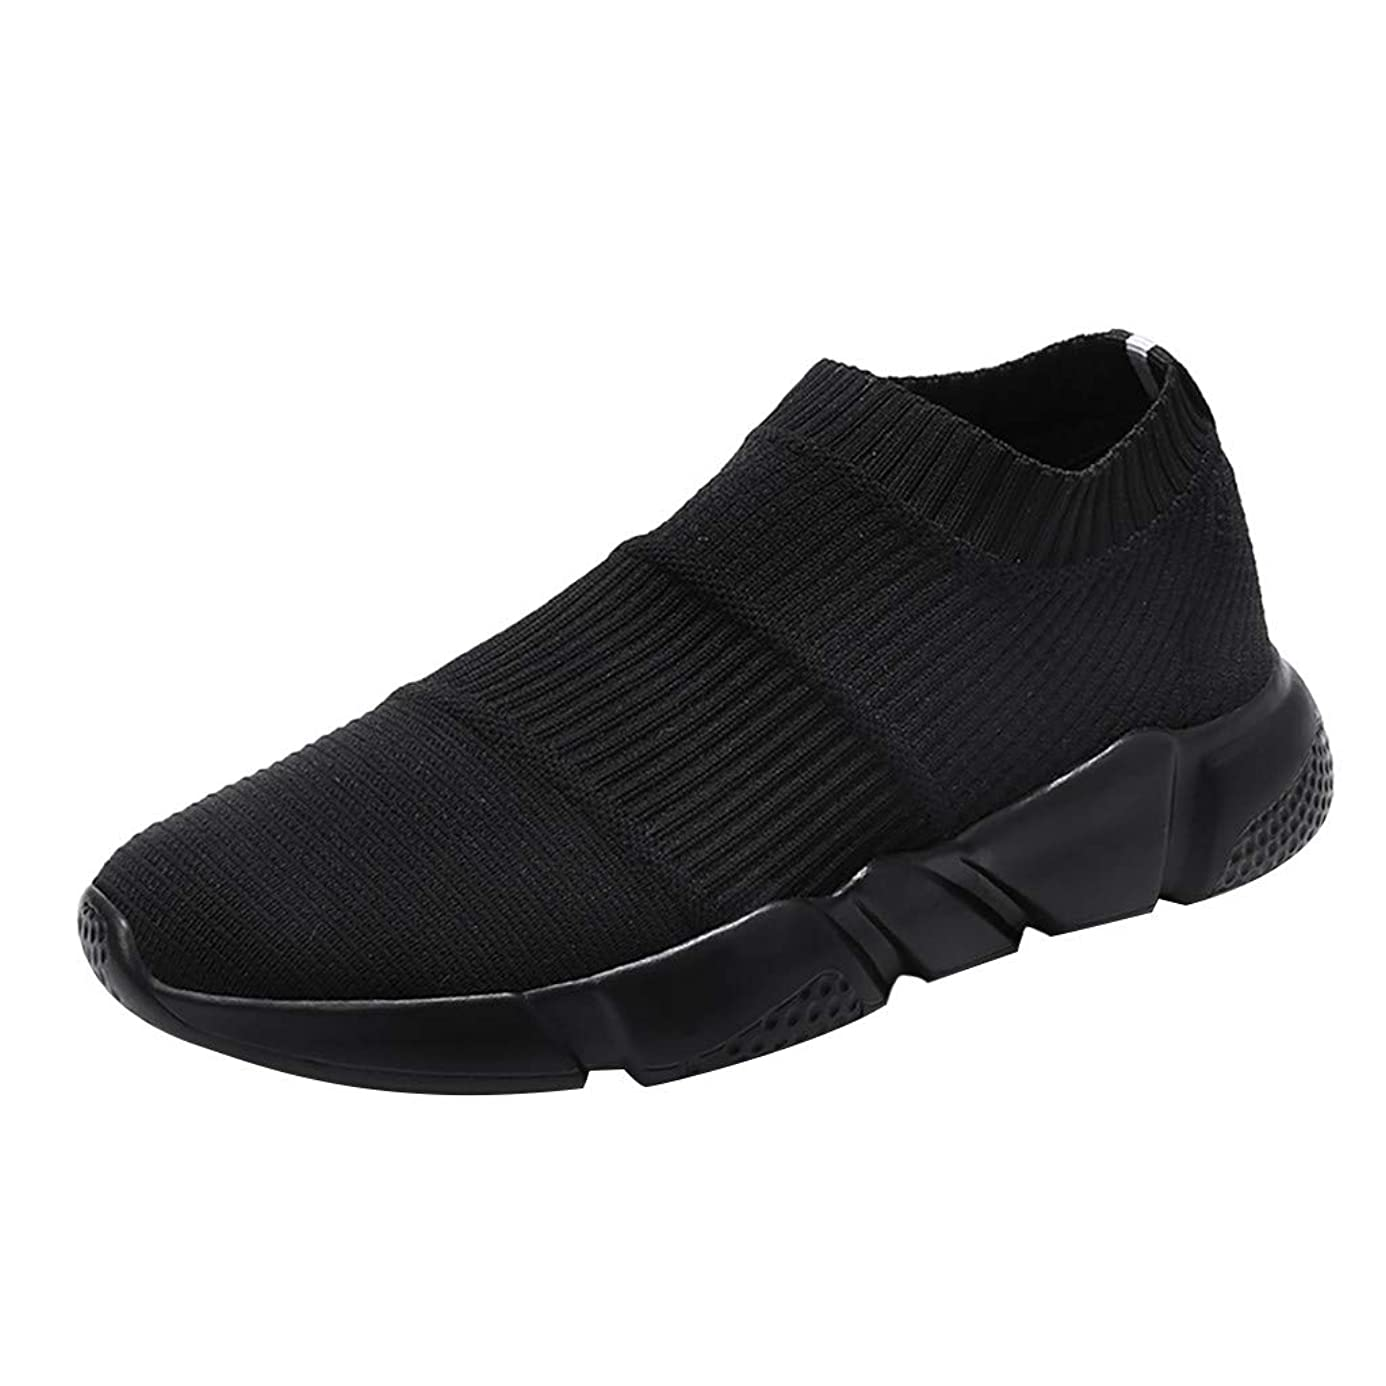 Men Mesh Breathable Sneakers,Mosunx Athletic Boys Woven Mesh Ultra Lightweight Slip On Sport Running Shoes Male Summer Casual Gym Movment Shoes (42, Black)